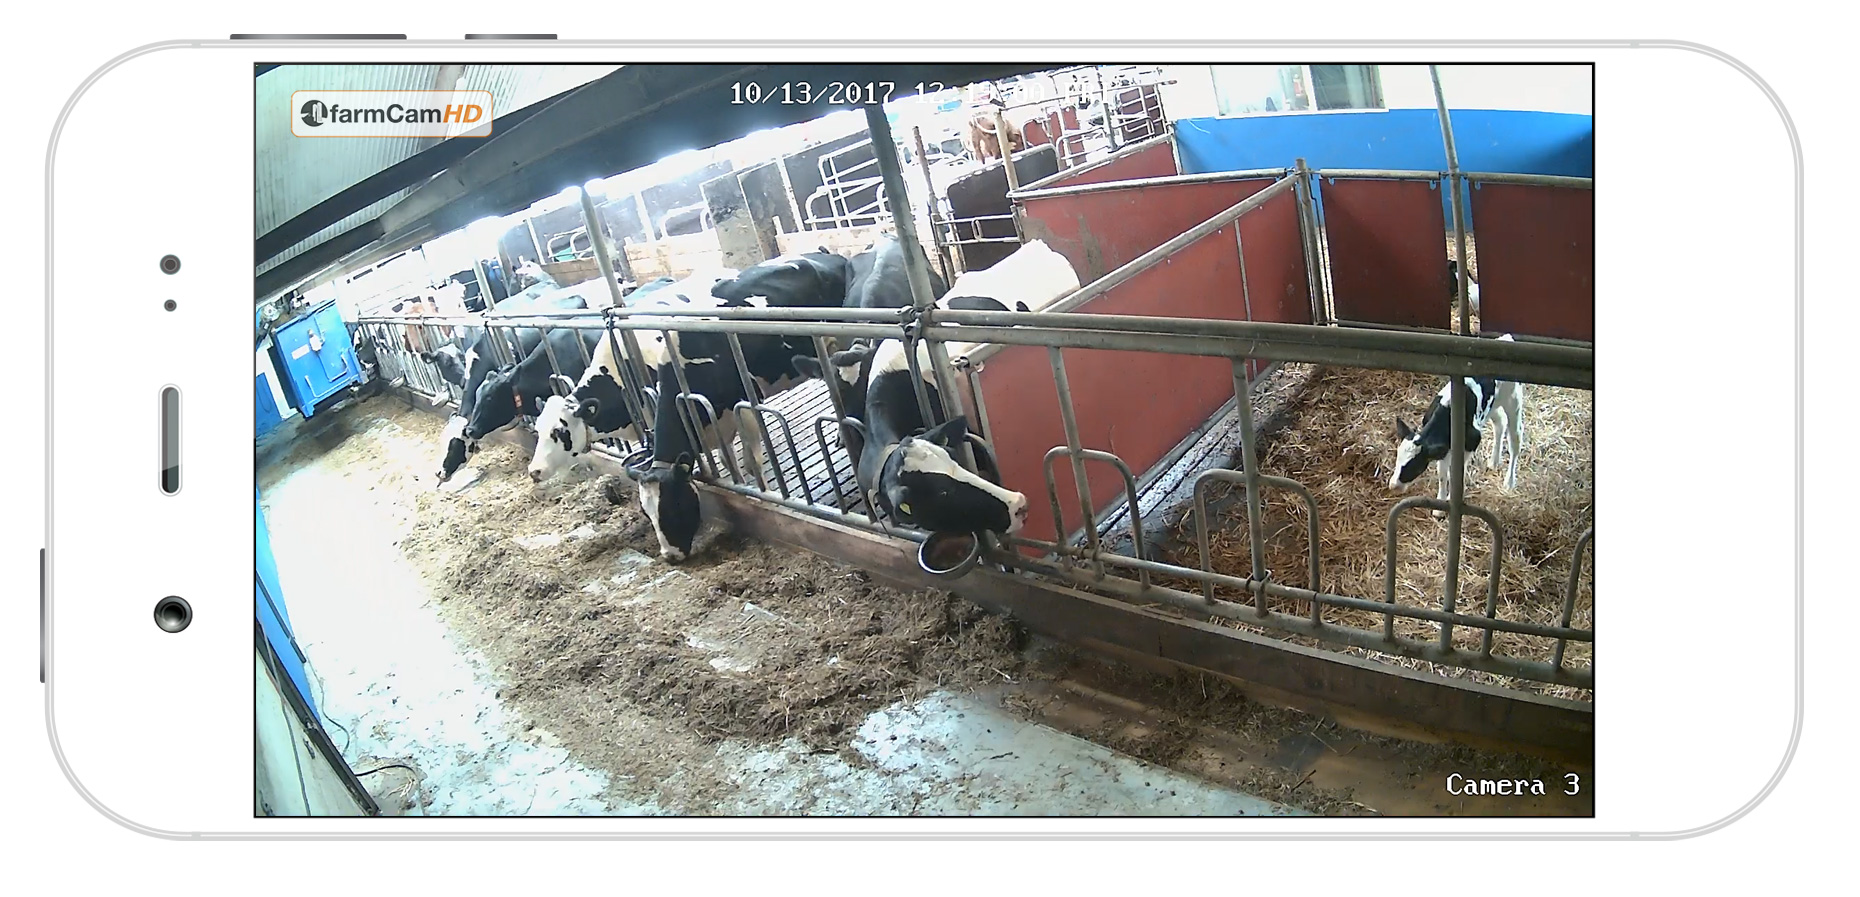 FarmCam HD - How the picture looks like